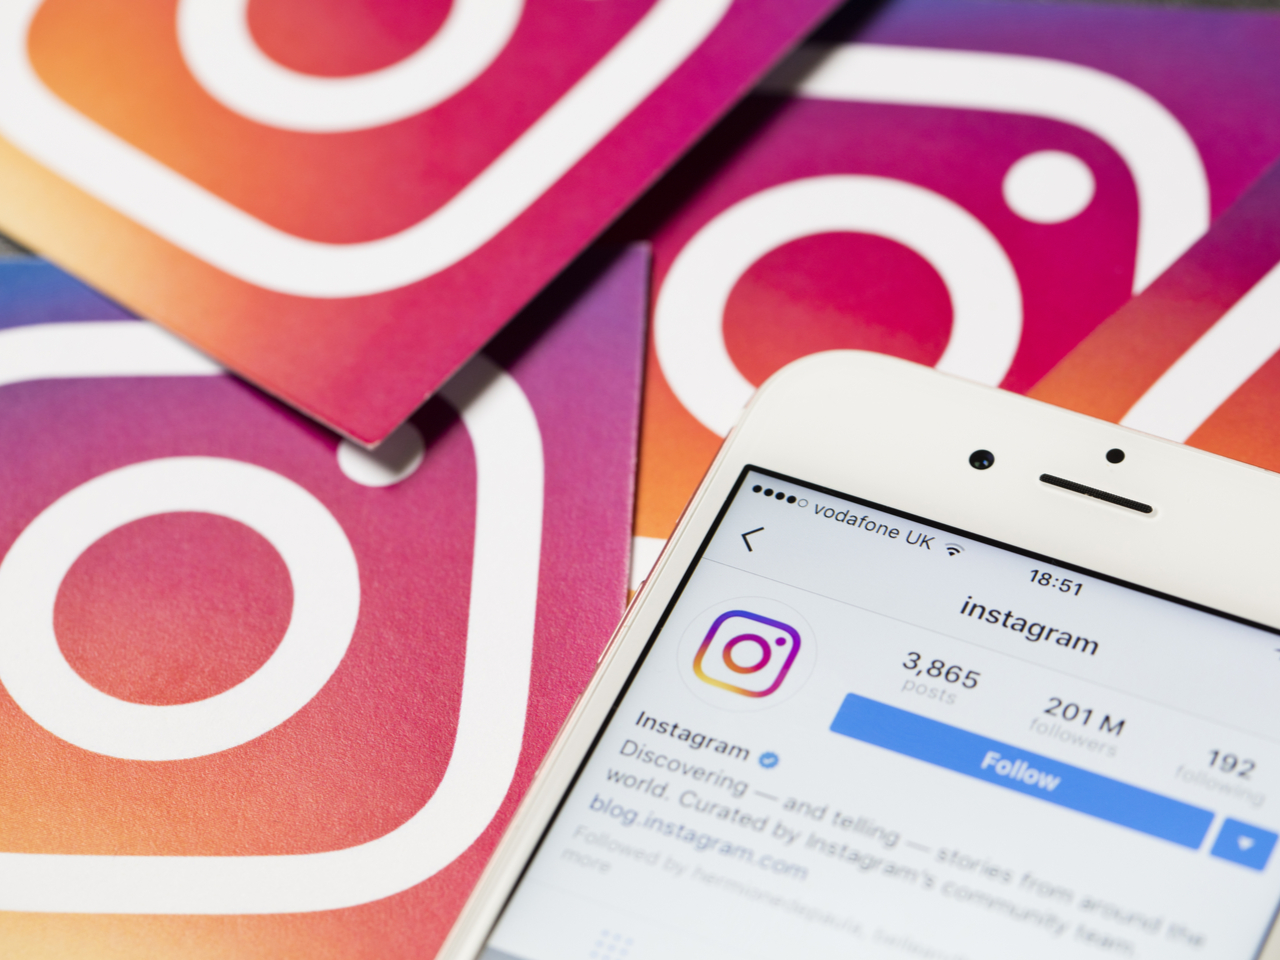 Is Instagram Listening To Your Conversations? - Panda Security